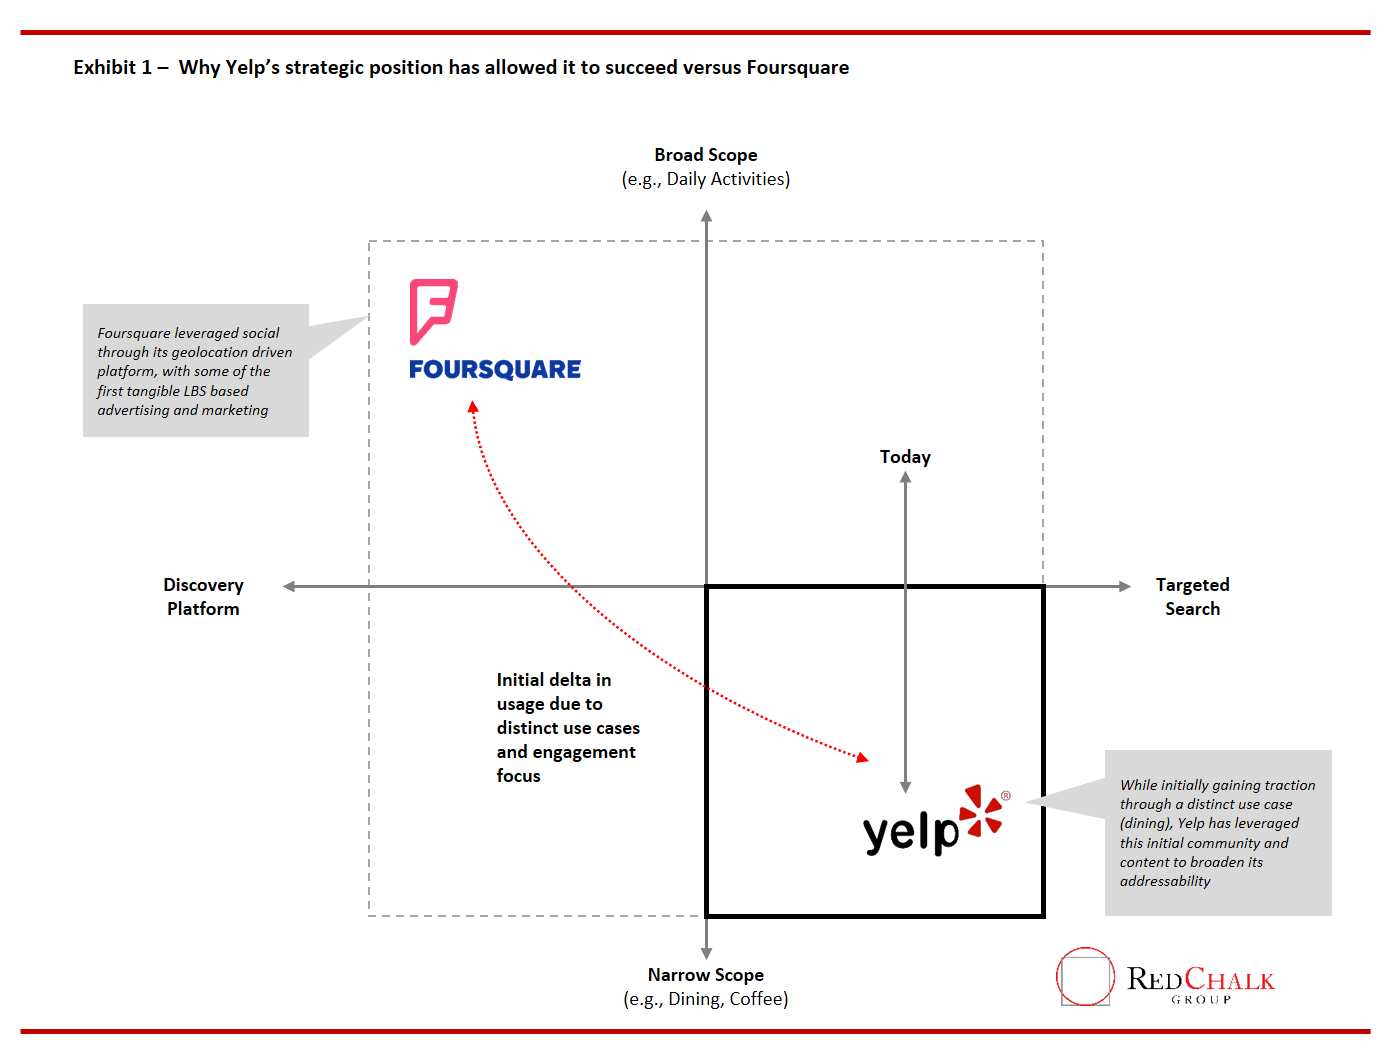 foursquare-yelp-local-marketing - Red Chalk Group